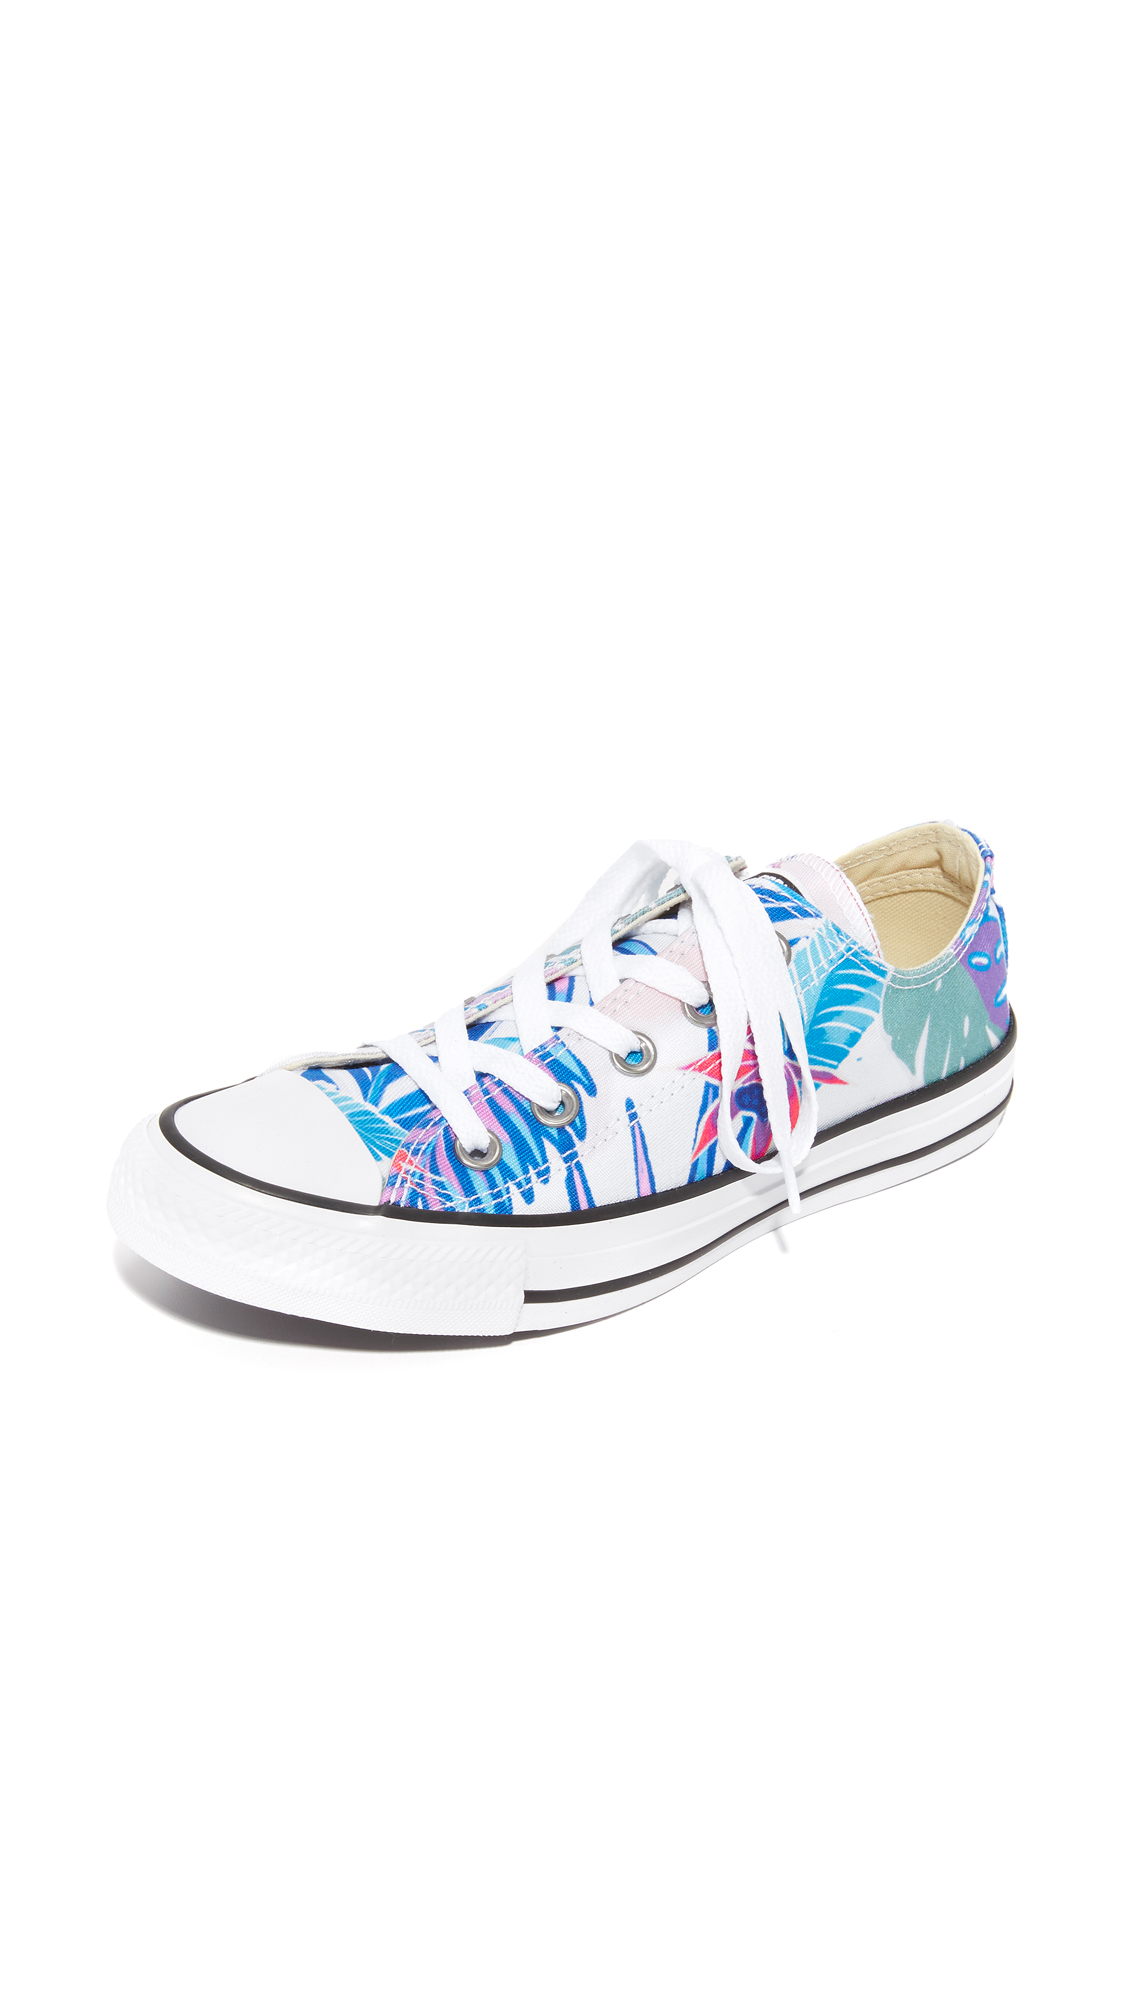 Photo of Converse Chuck Taylor All Star Oxford Tropical Print Sneakers Fresh Cyan-Magenta - Converse online